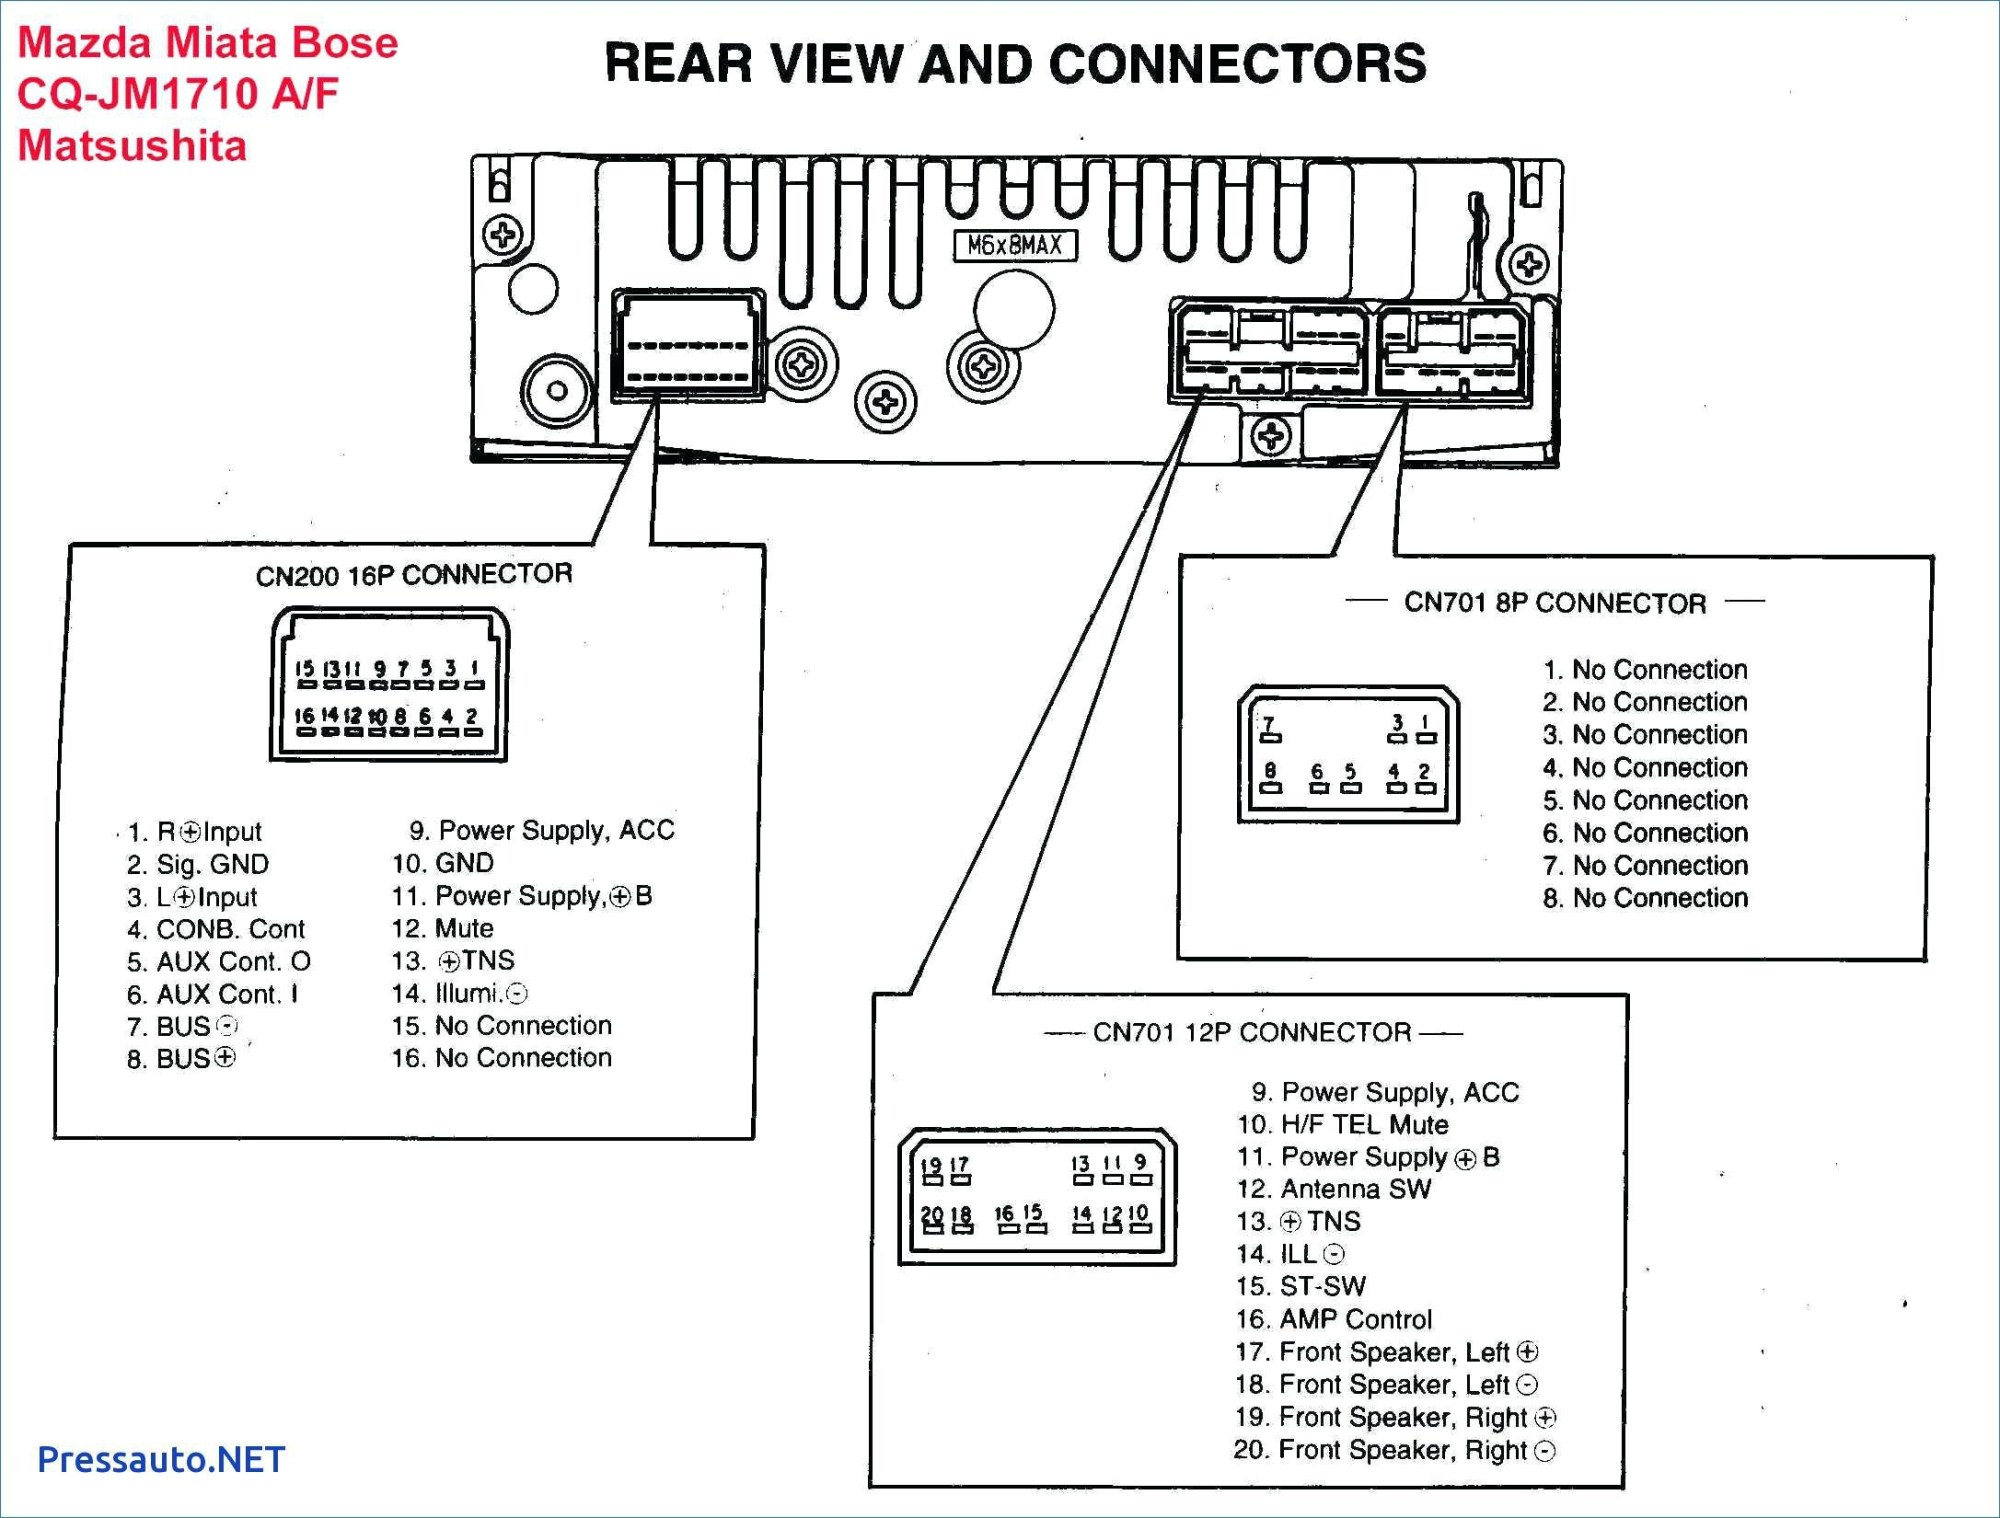 hight resolution of mazda b2000 electrical diagram moreover mazda protege engine diagram wiring diagram furthermore wiring harness 2003 mazda protege 5 as well